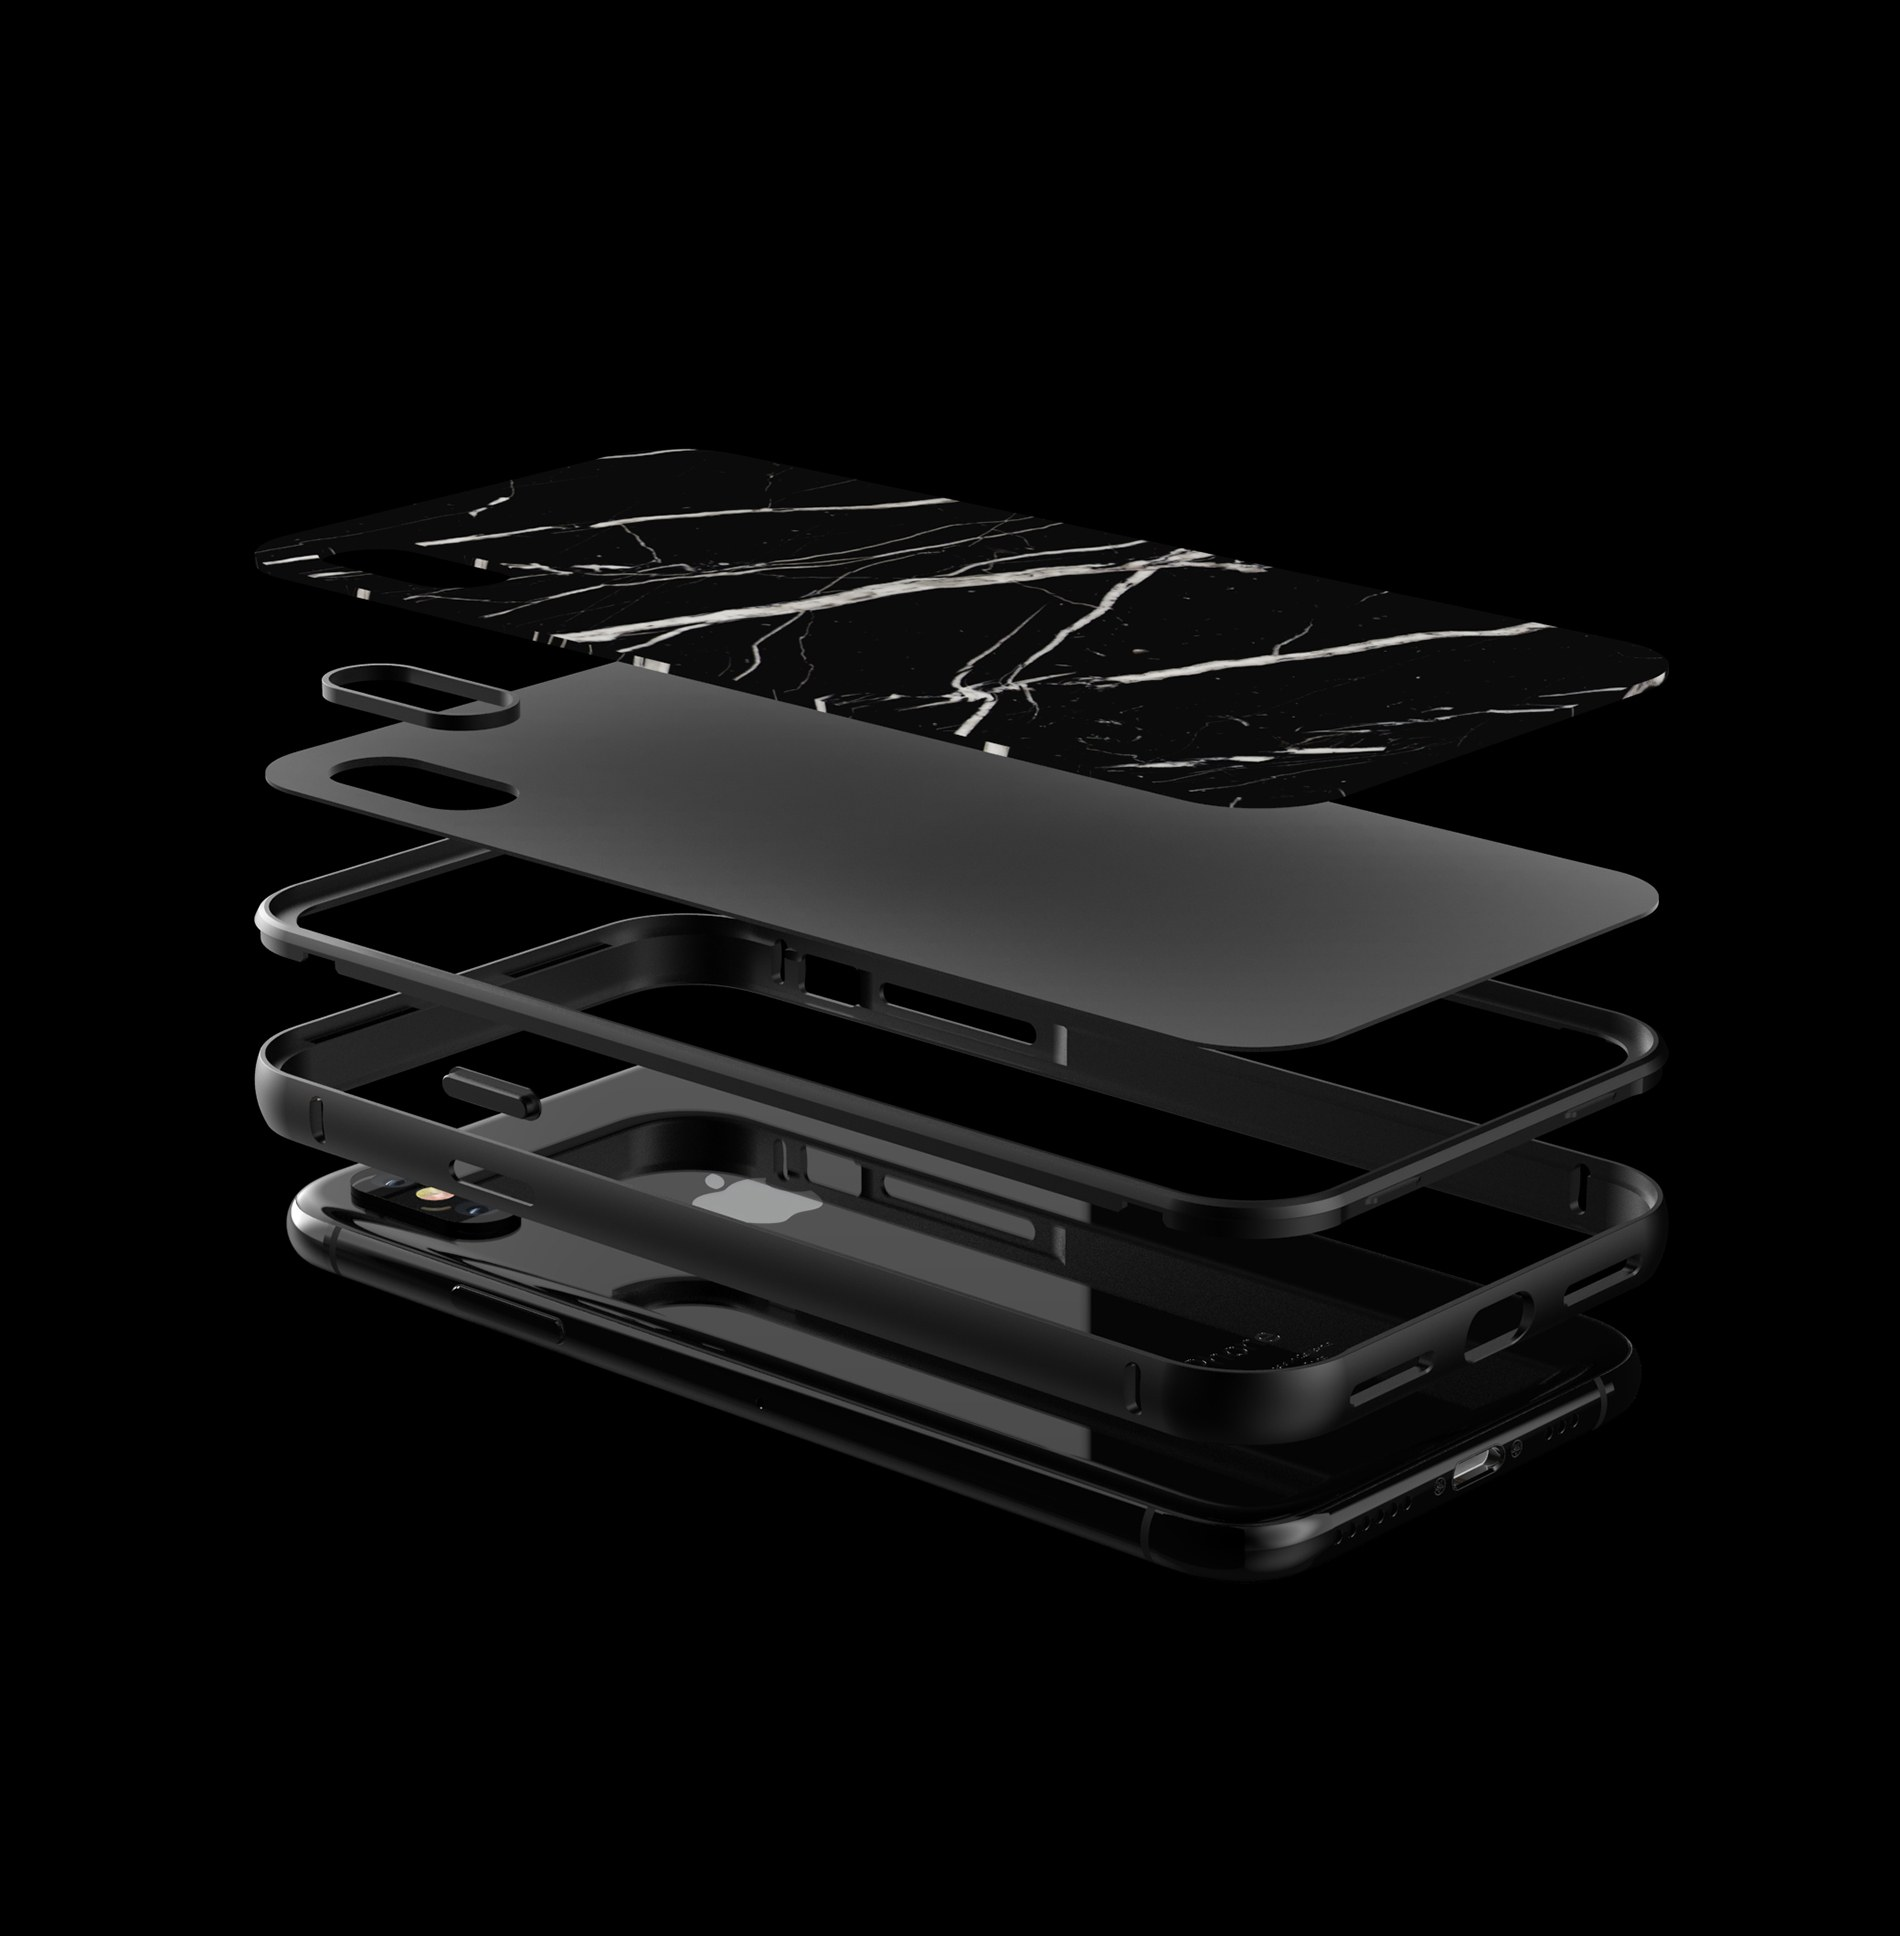 layers of the aluminum body which is used for the real stone phone case